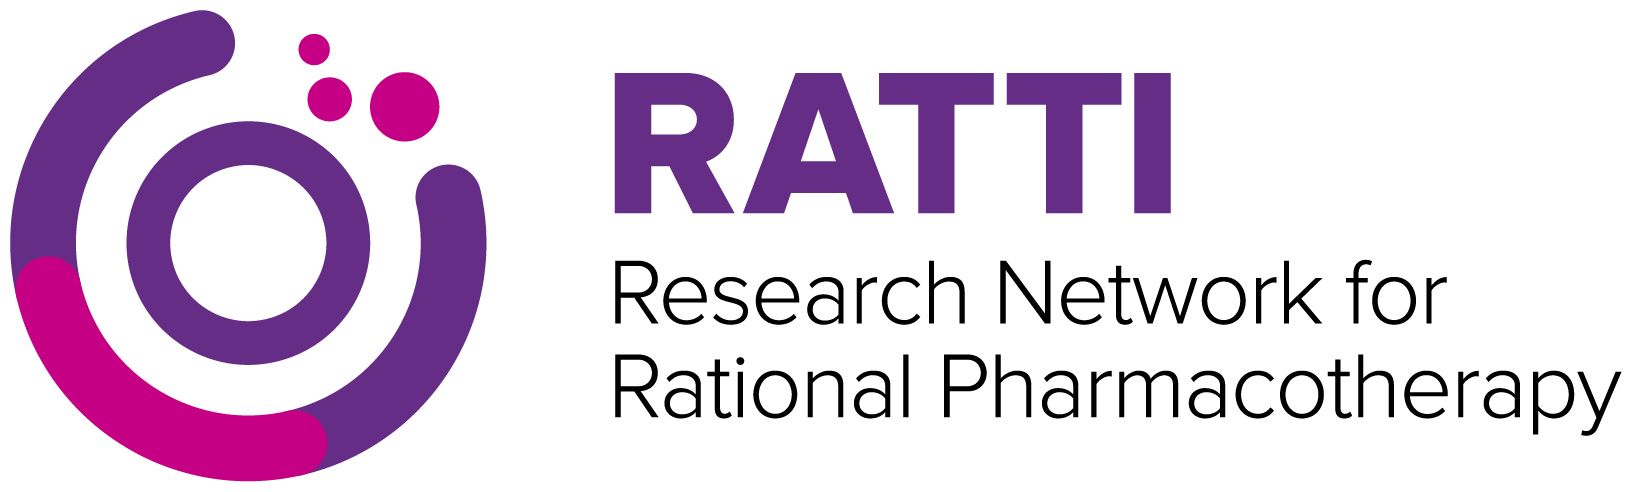 Research Network For Rational Pharmacotherapy Ratti